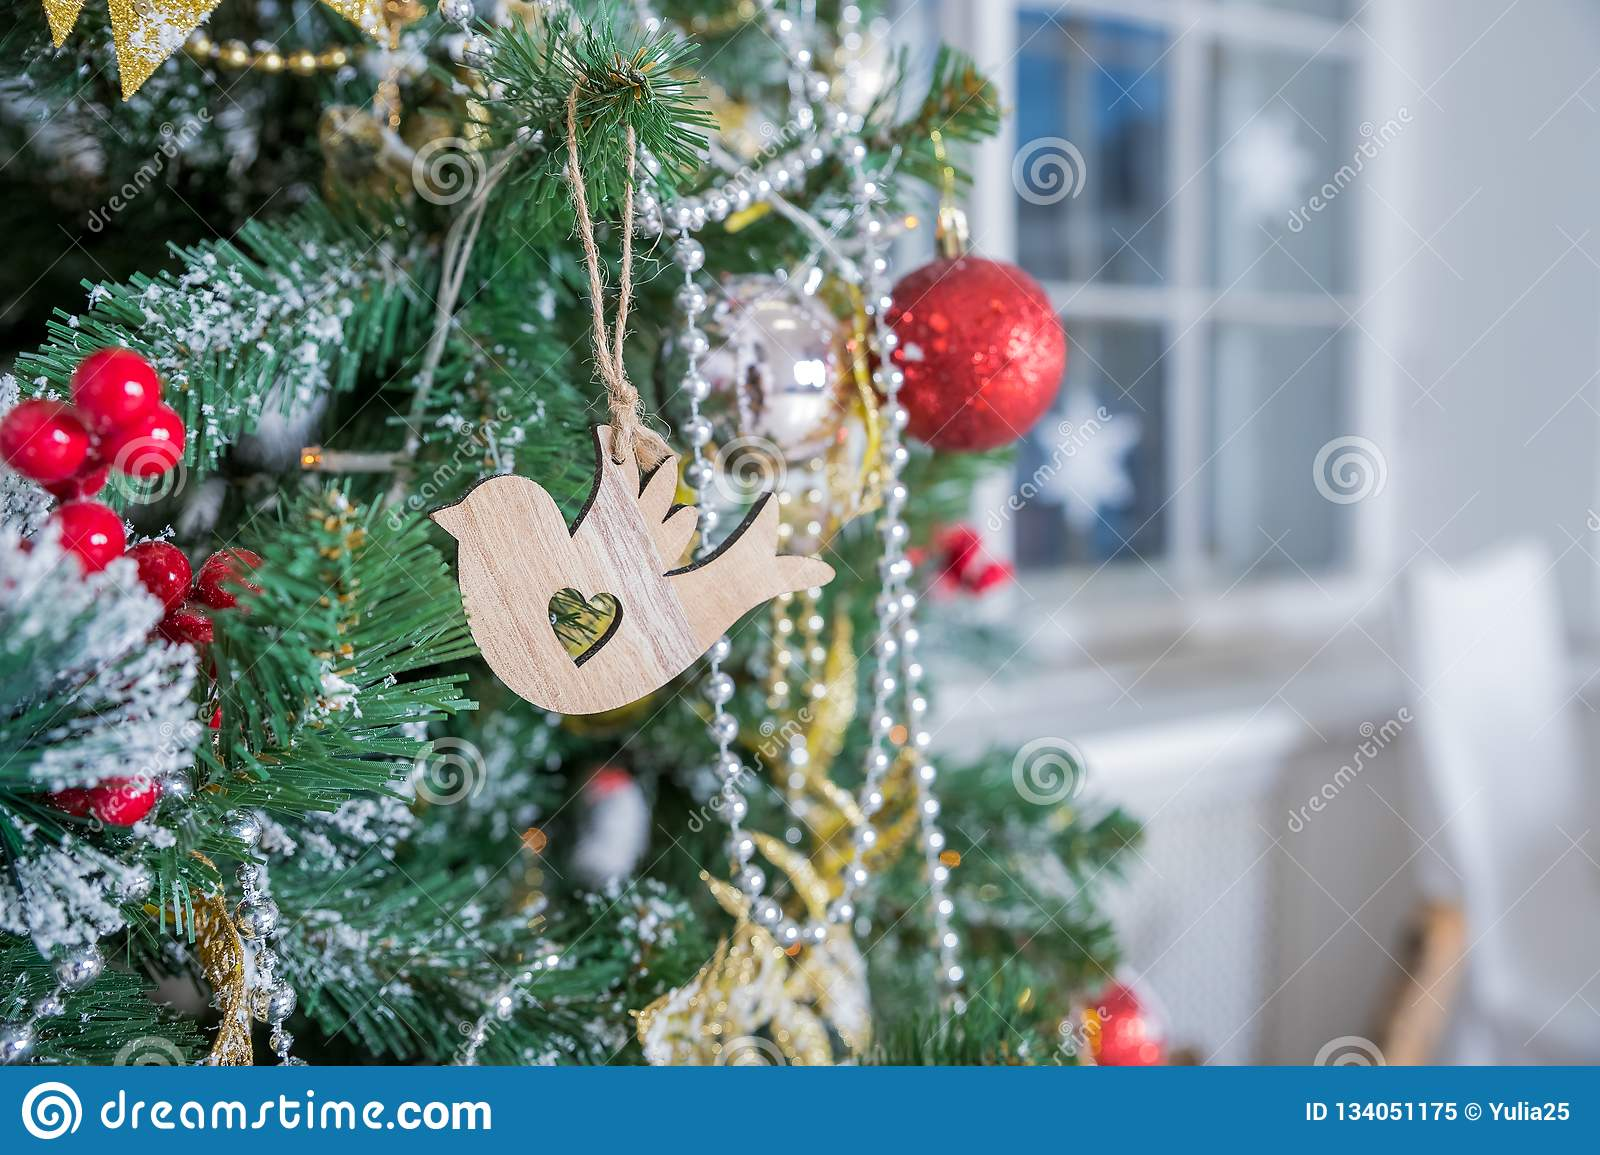 Rustic Christmas Decoration On Textured Wooden Background Wooden